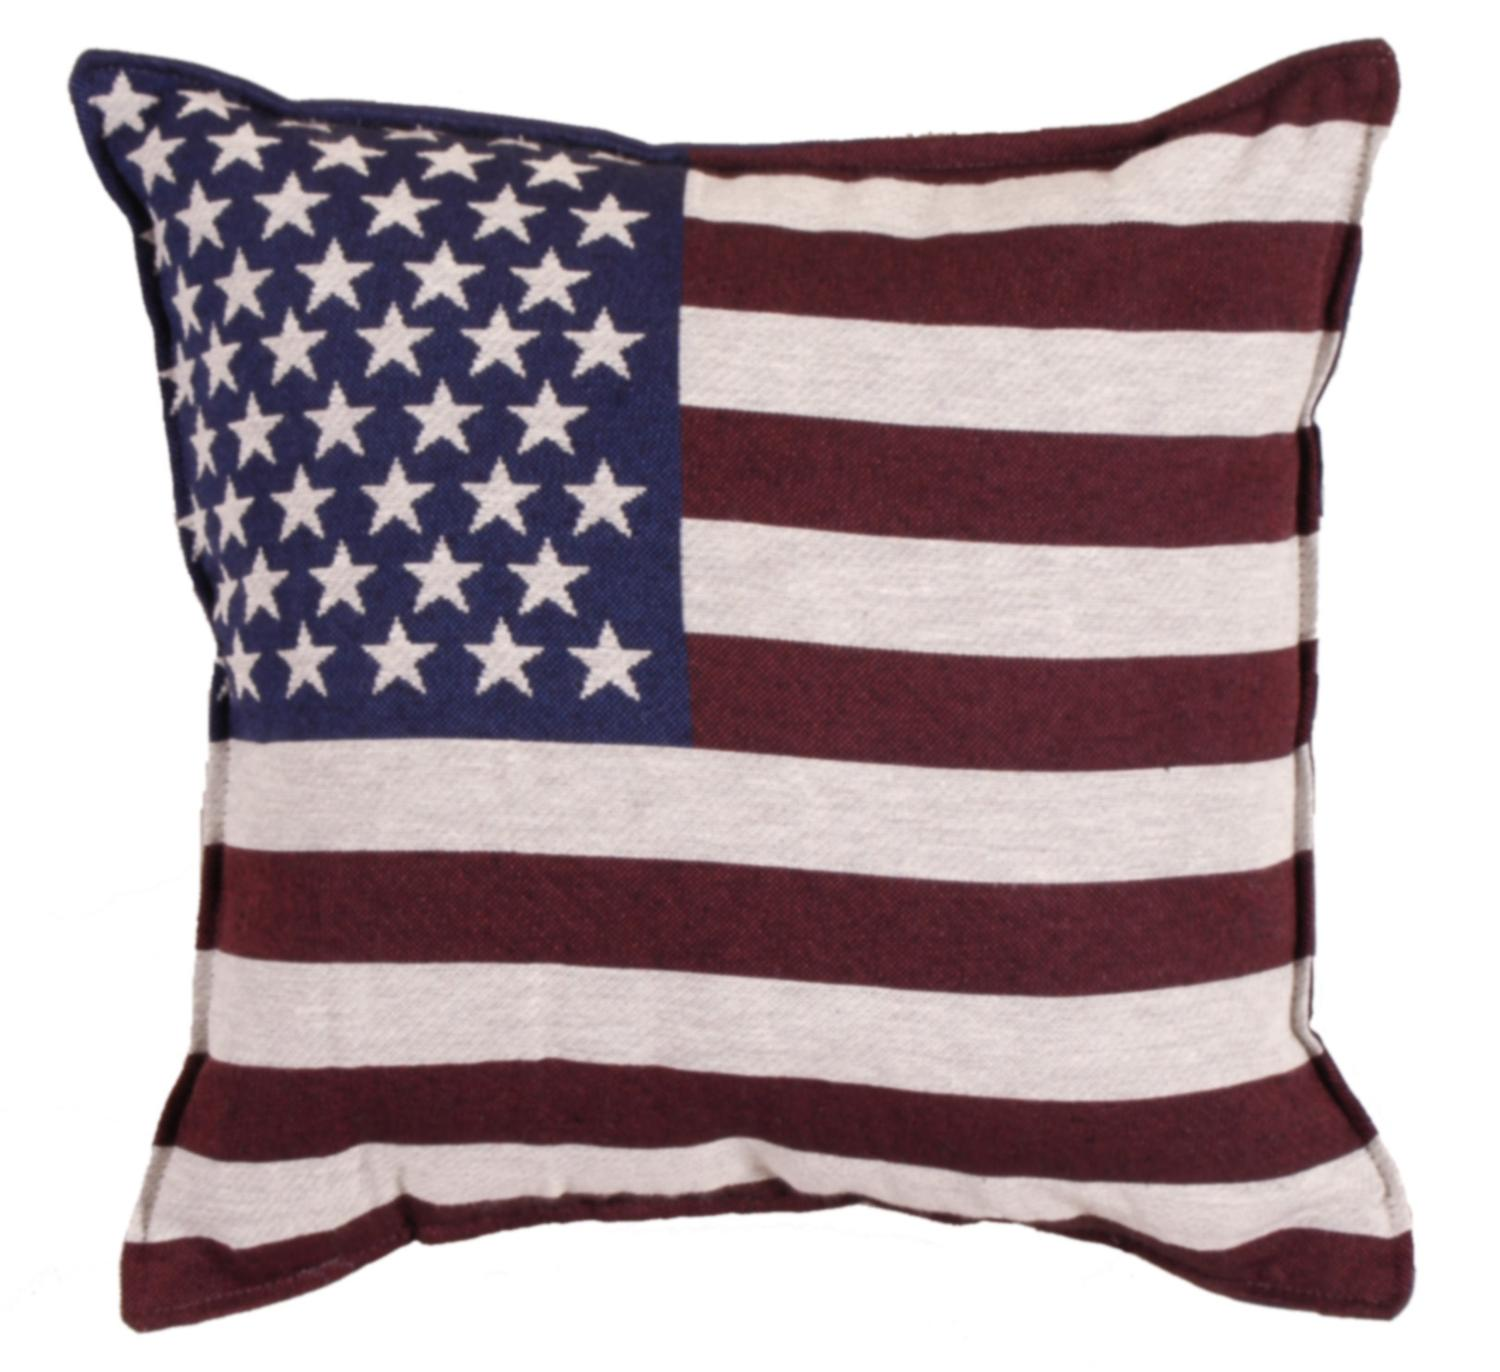 Set of 2 Patriotic United States Flag Square Decorative Tapestry Throw Pillows 17""